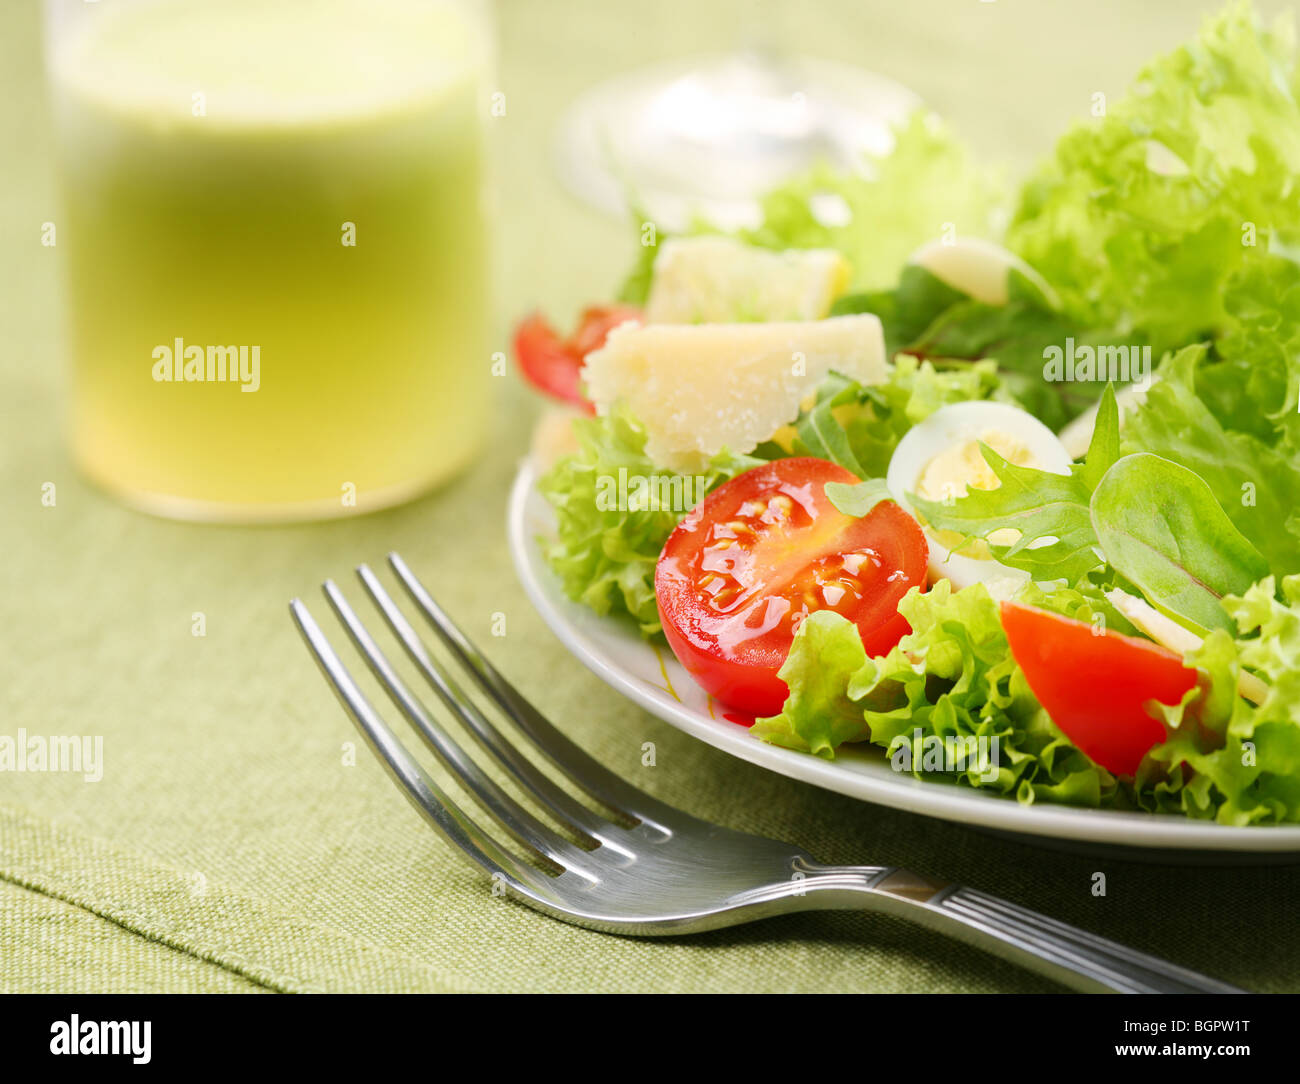 Fresh salad with tomato and quail eggs in a white bowl on a green tablecloth Stock Photo